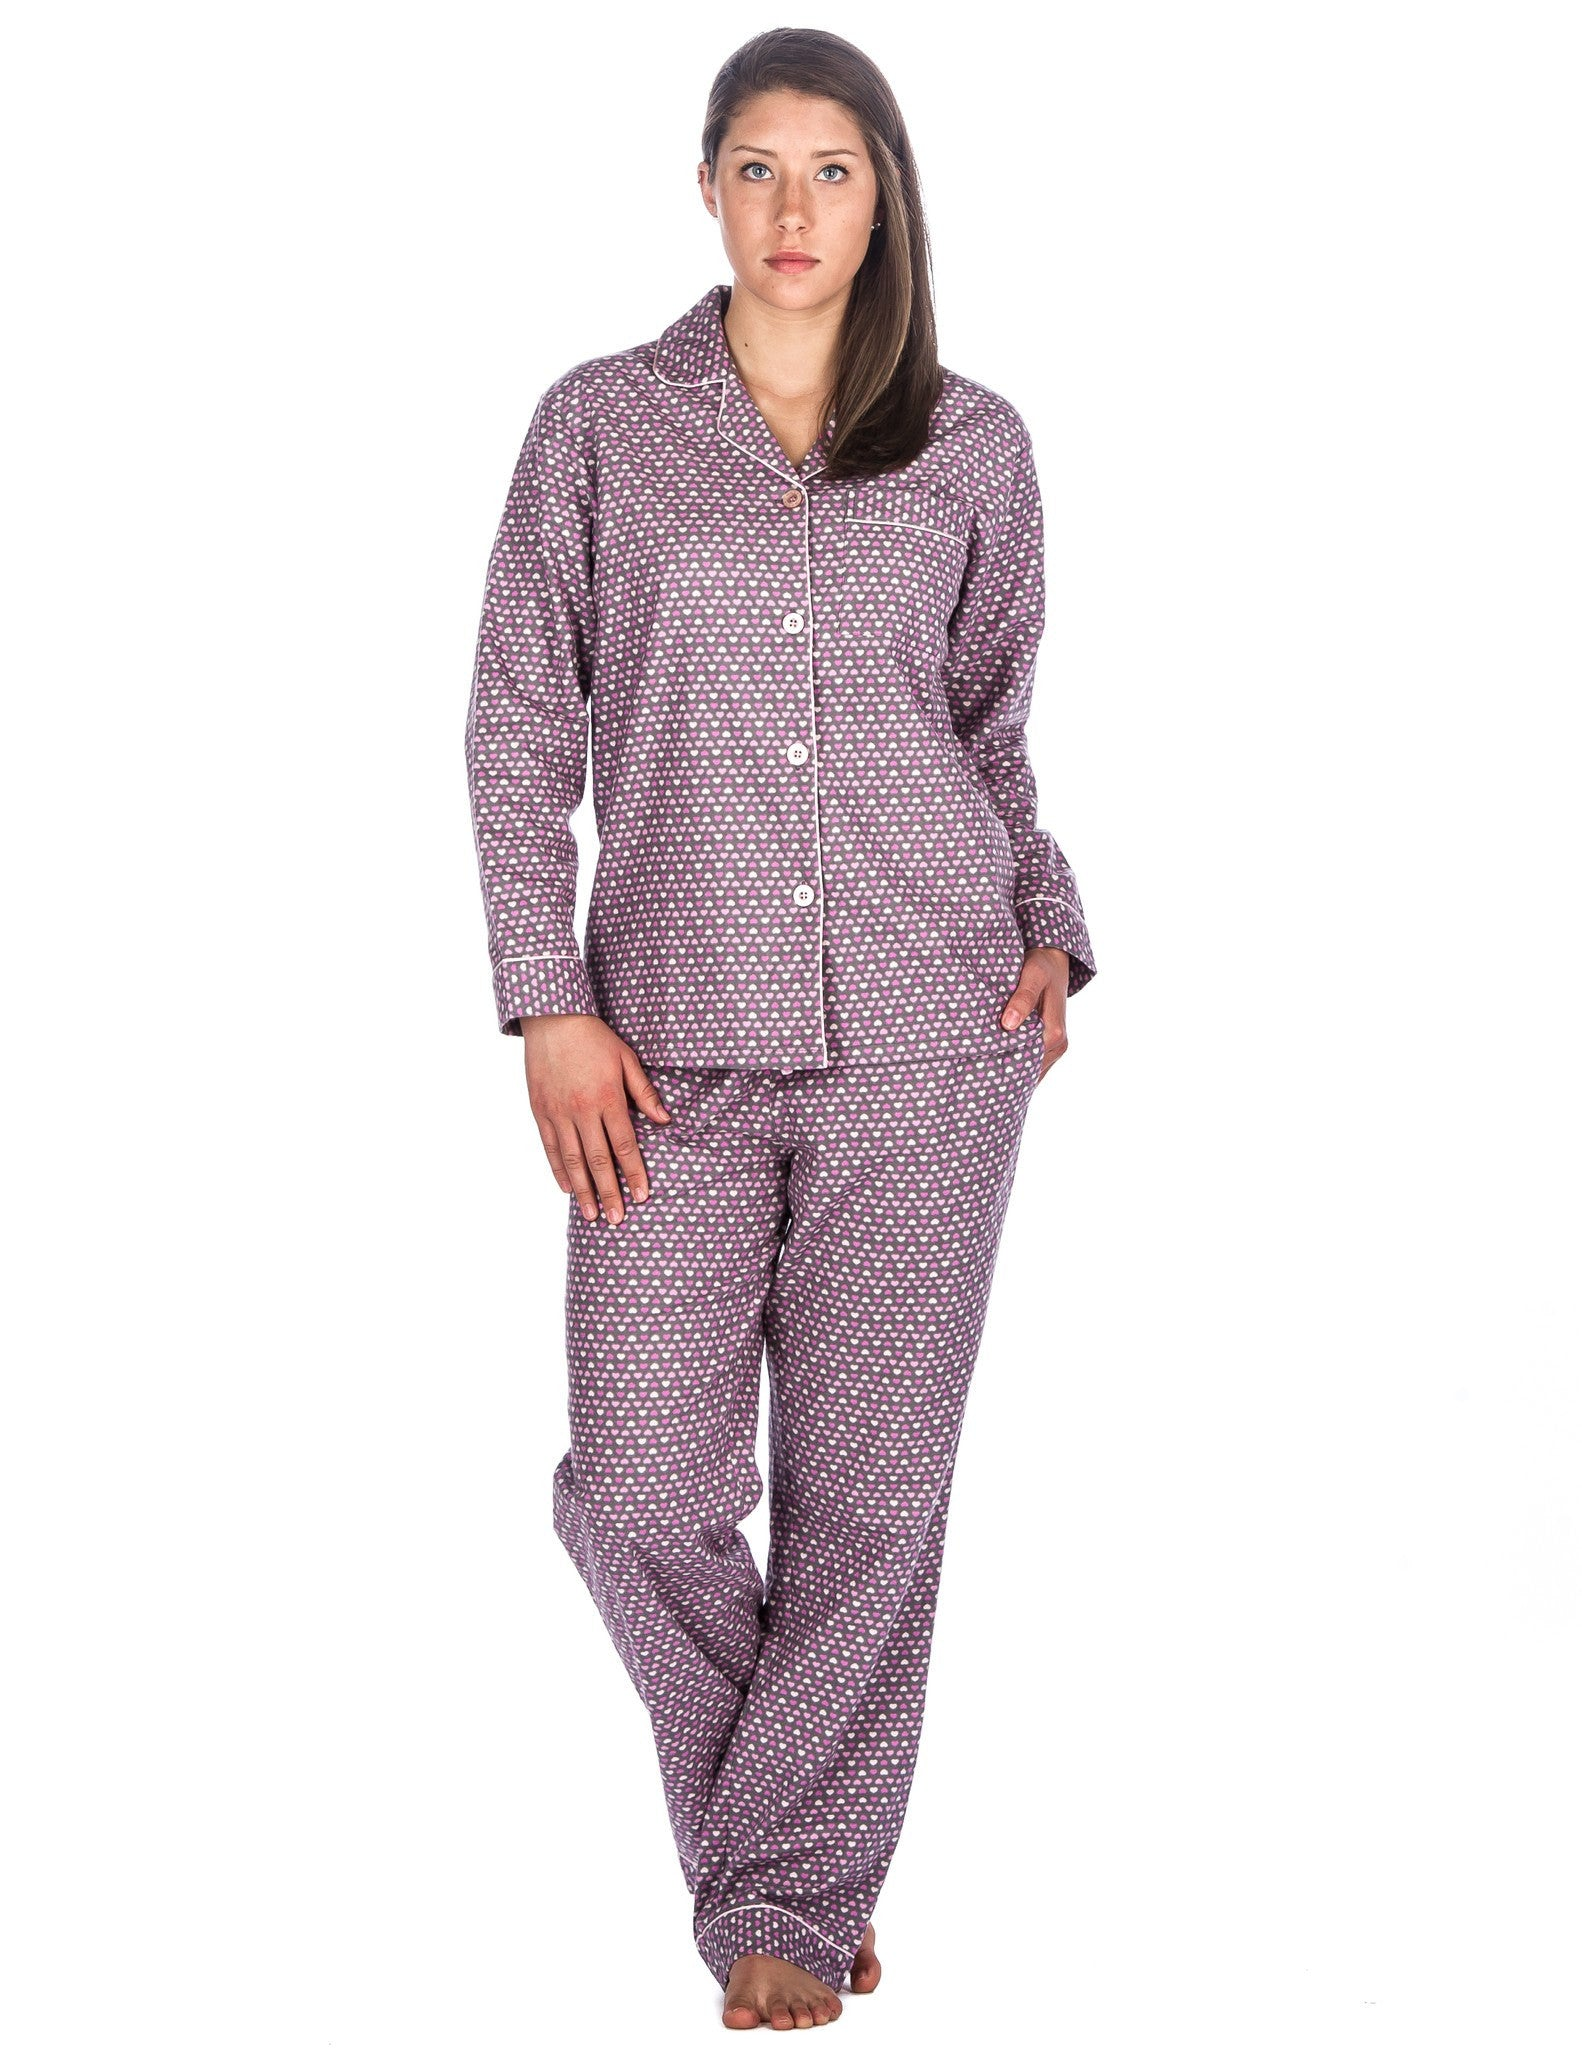 Shop for women's sleepwear and pajamas at the official Life is Good® website. 10% of profits go to help kids, plus get free shipping on orders over $